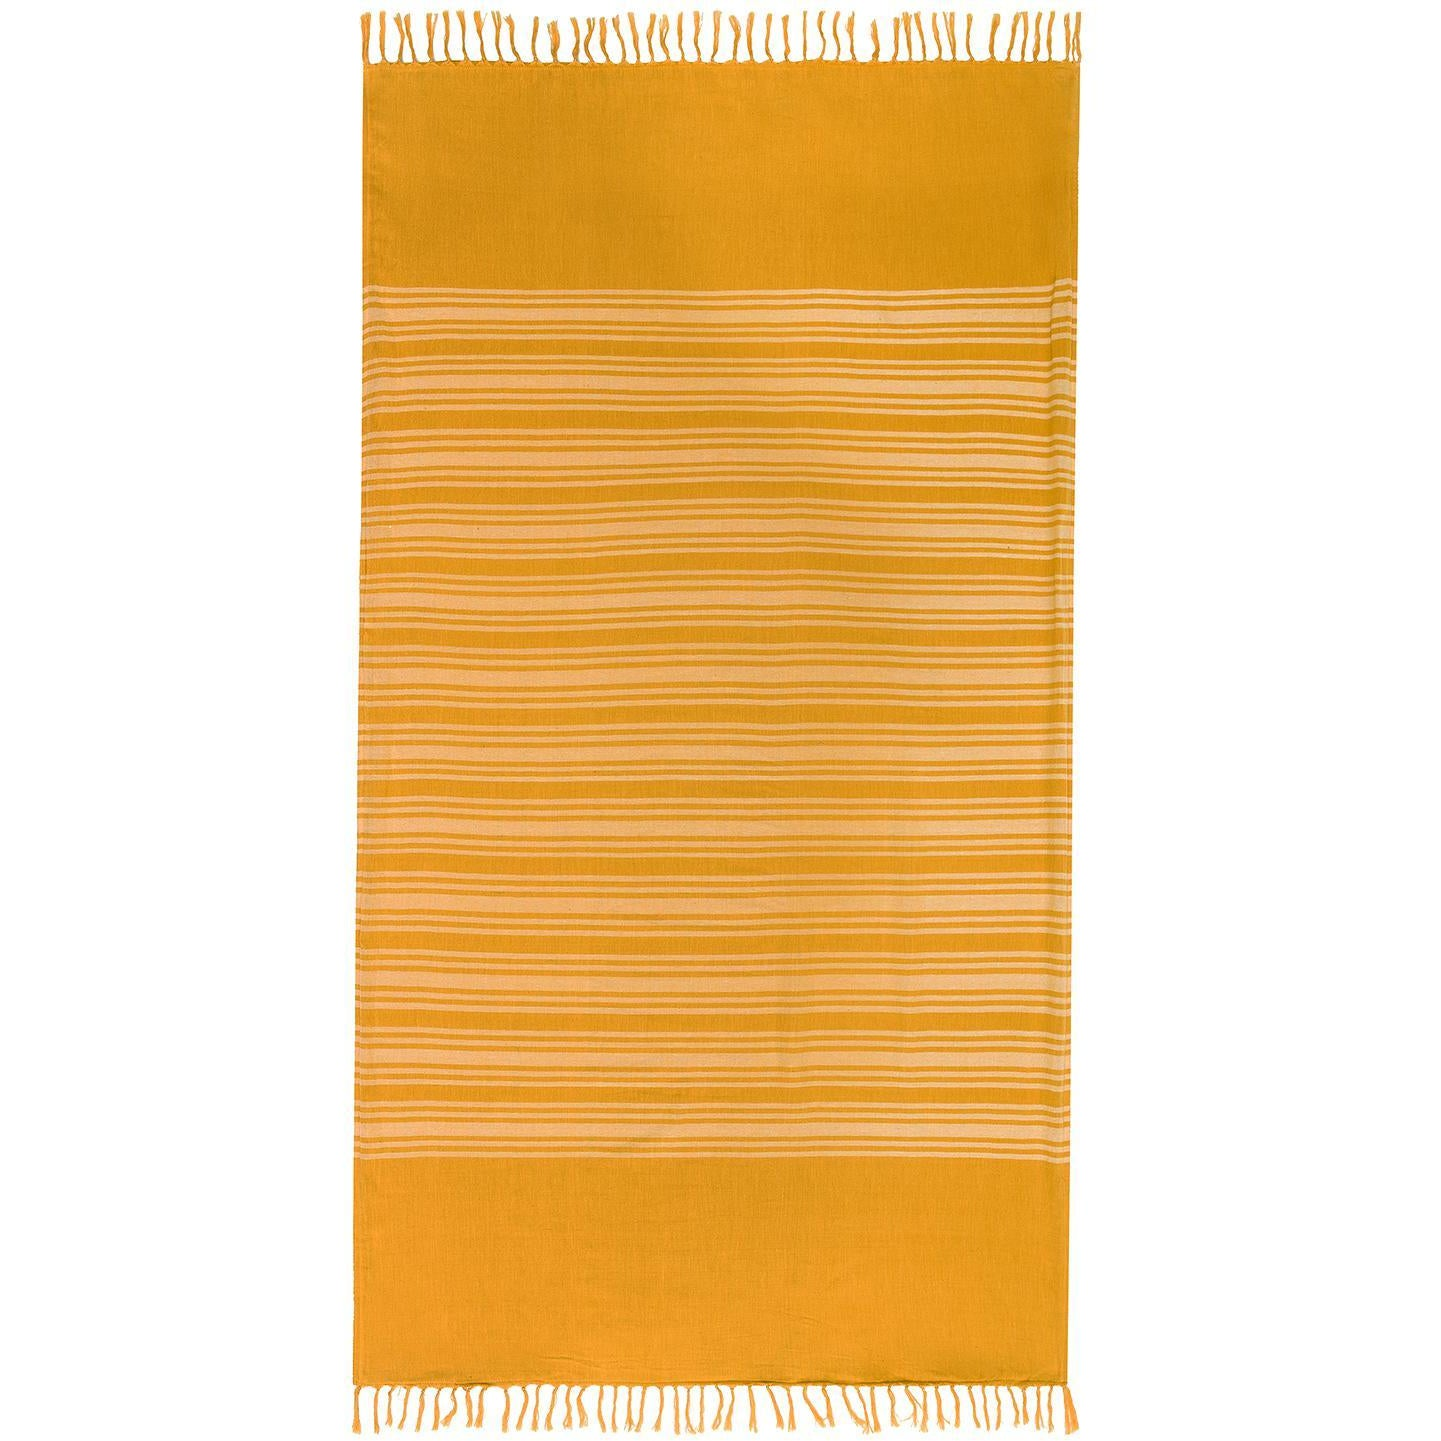 Amuse Society- sand storm towel